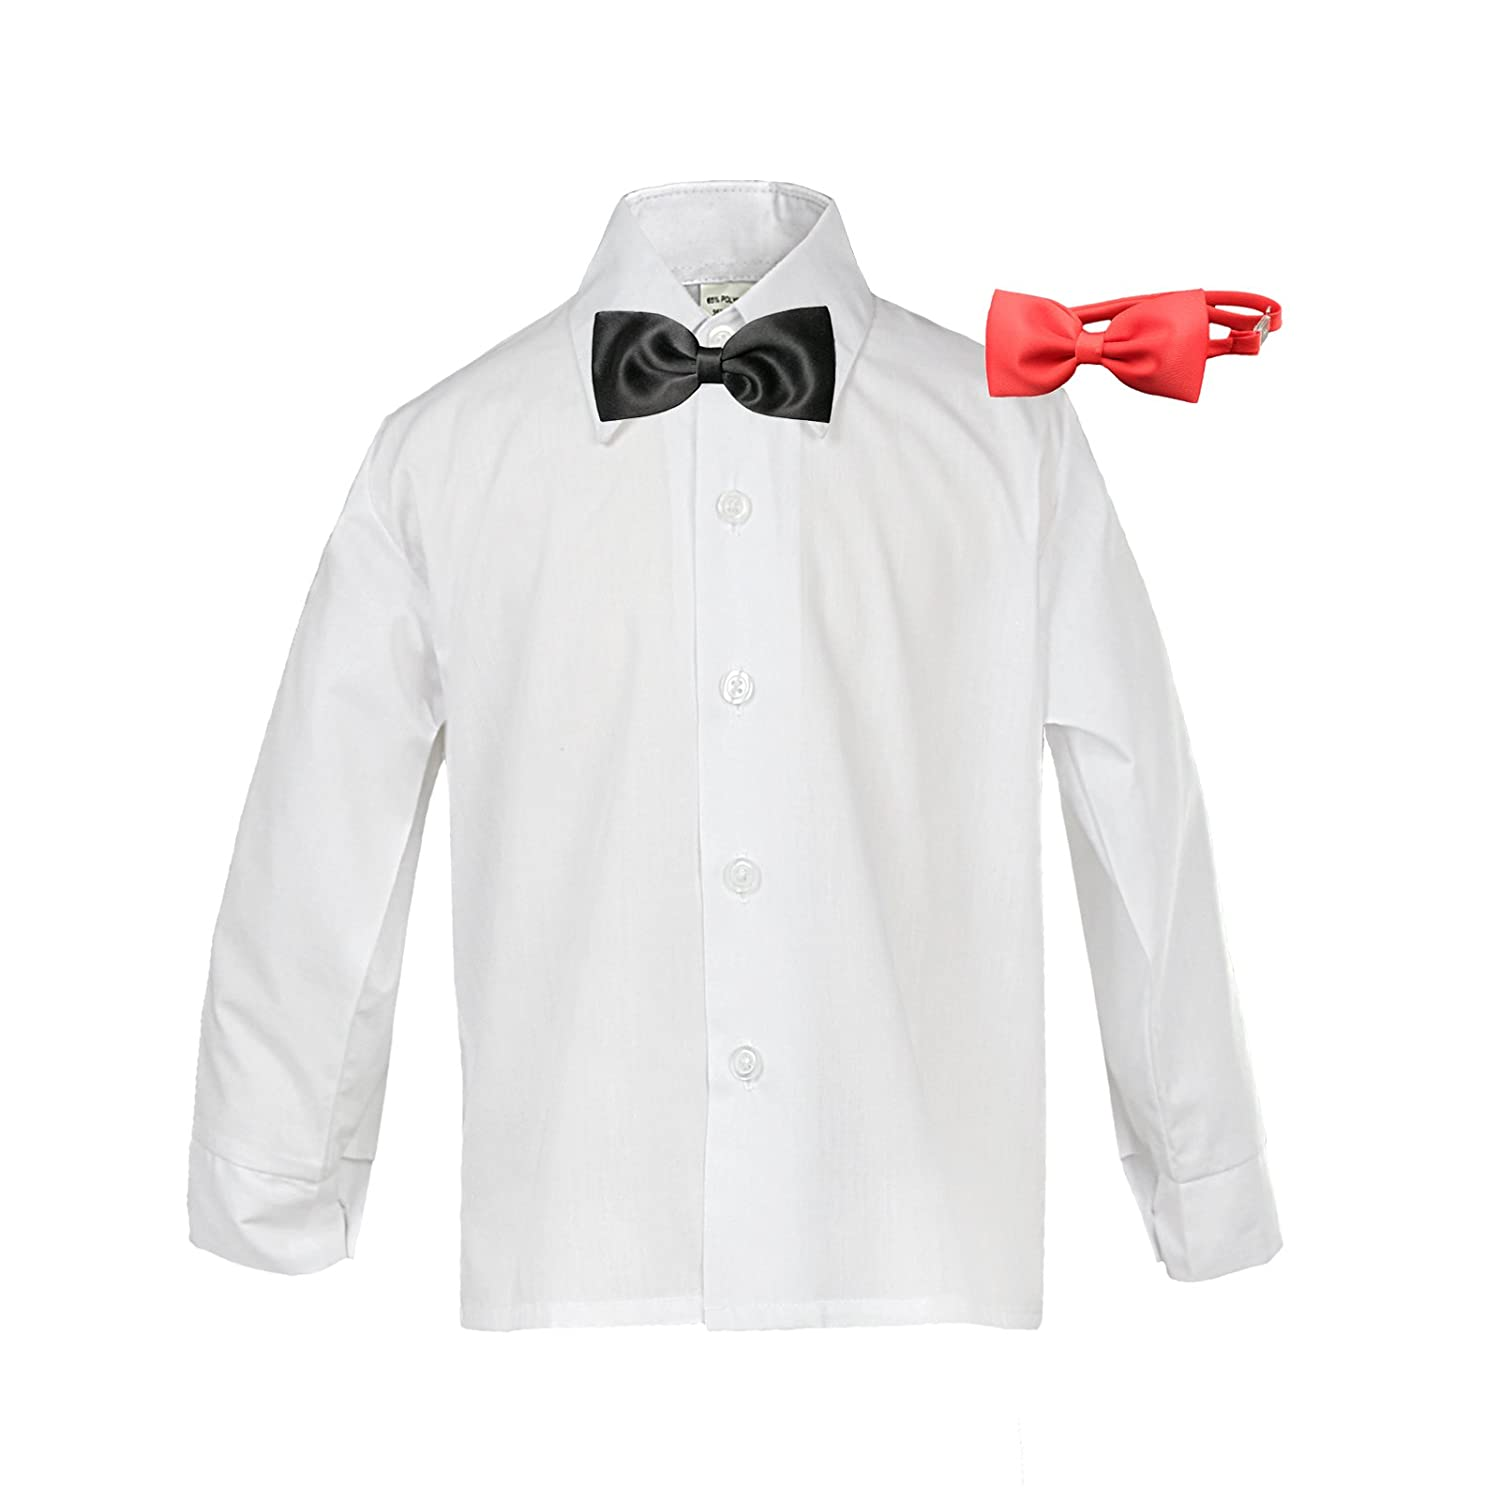 Baby Boy Kid Formal Tuxedo Suit White Dress Shirt Color Red & Black Bow tie Sm-4